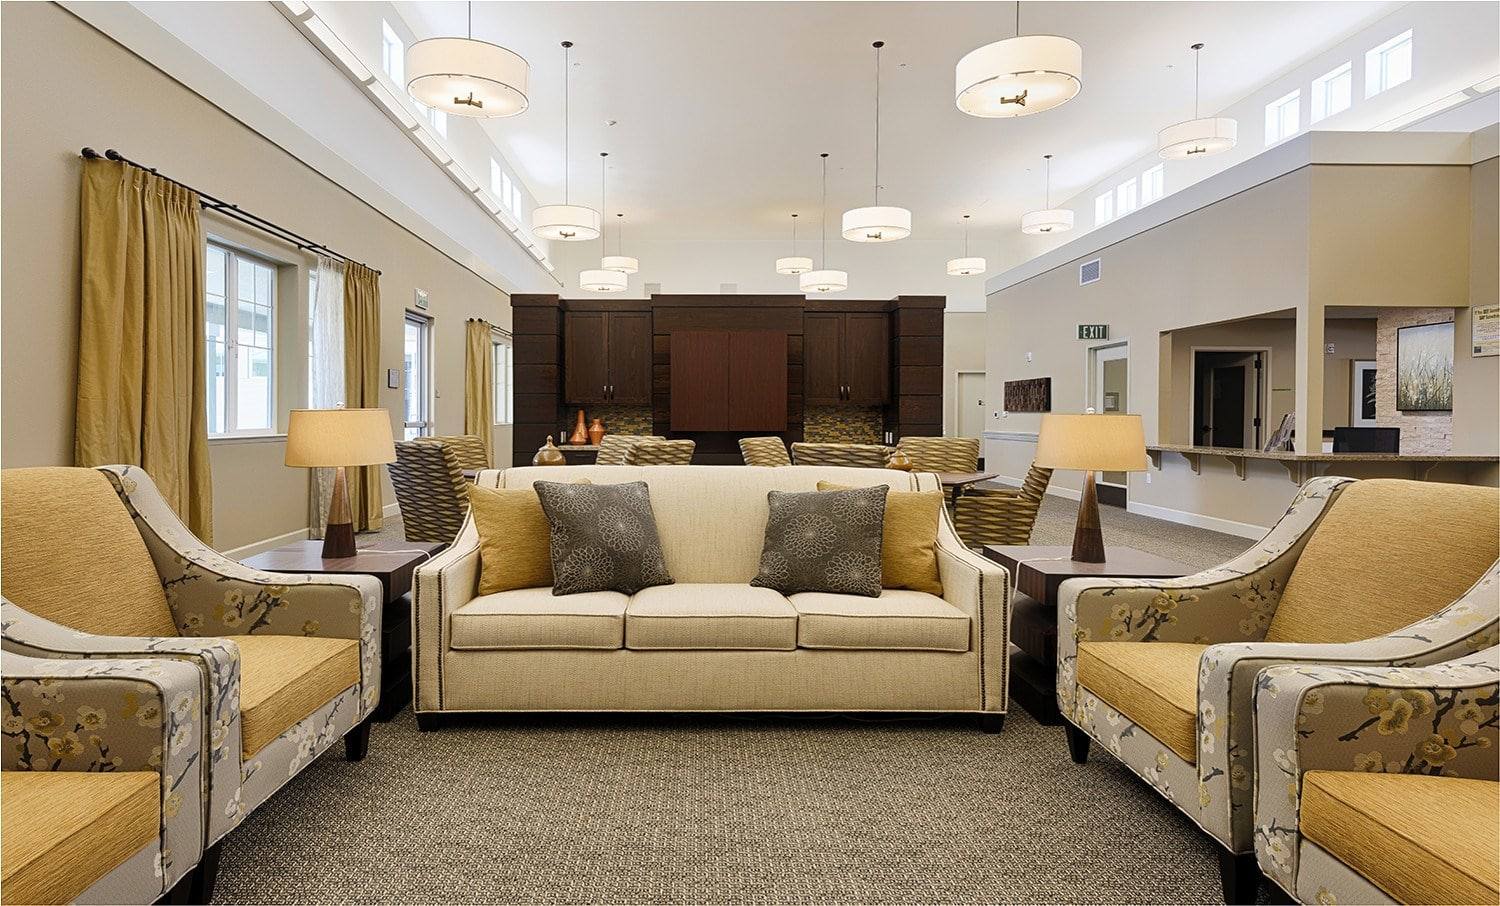 Kingston Bay Senior Living is located in Fresno, CA.